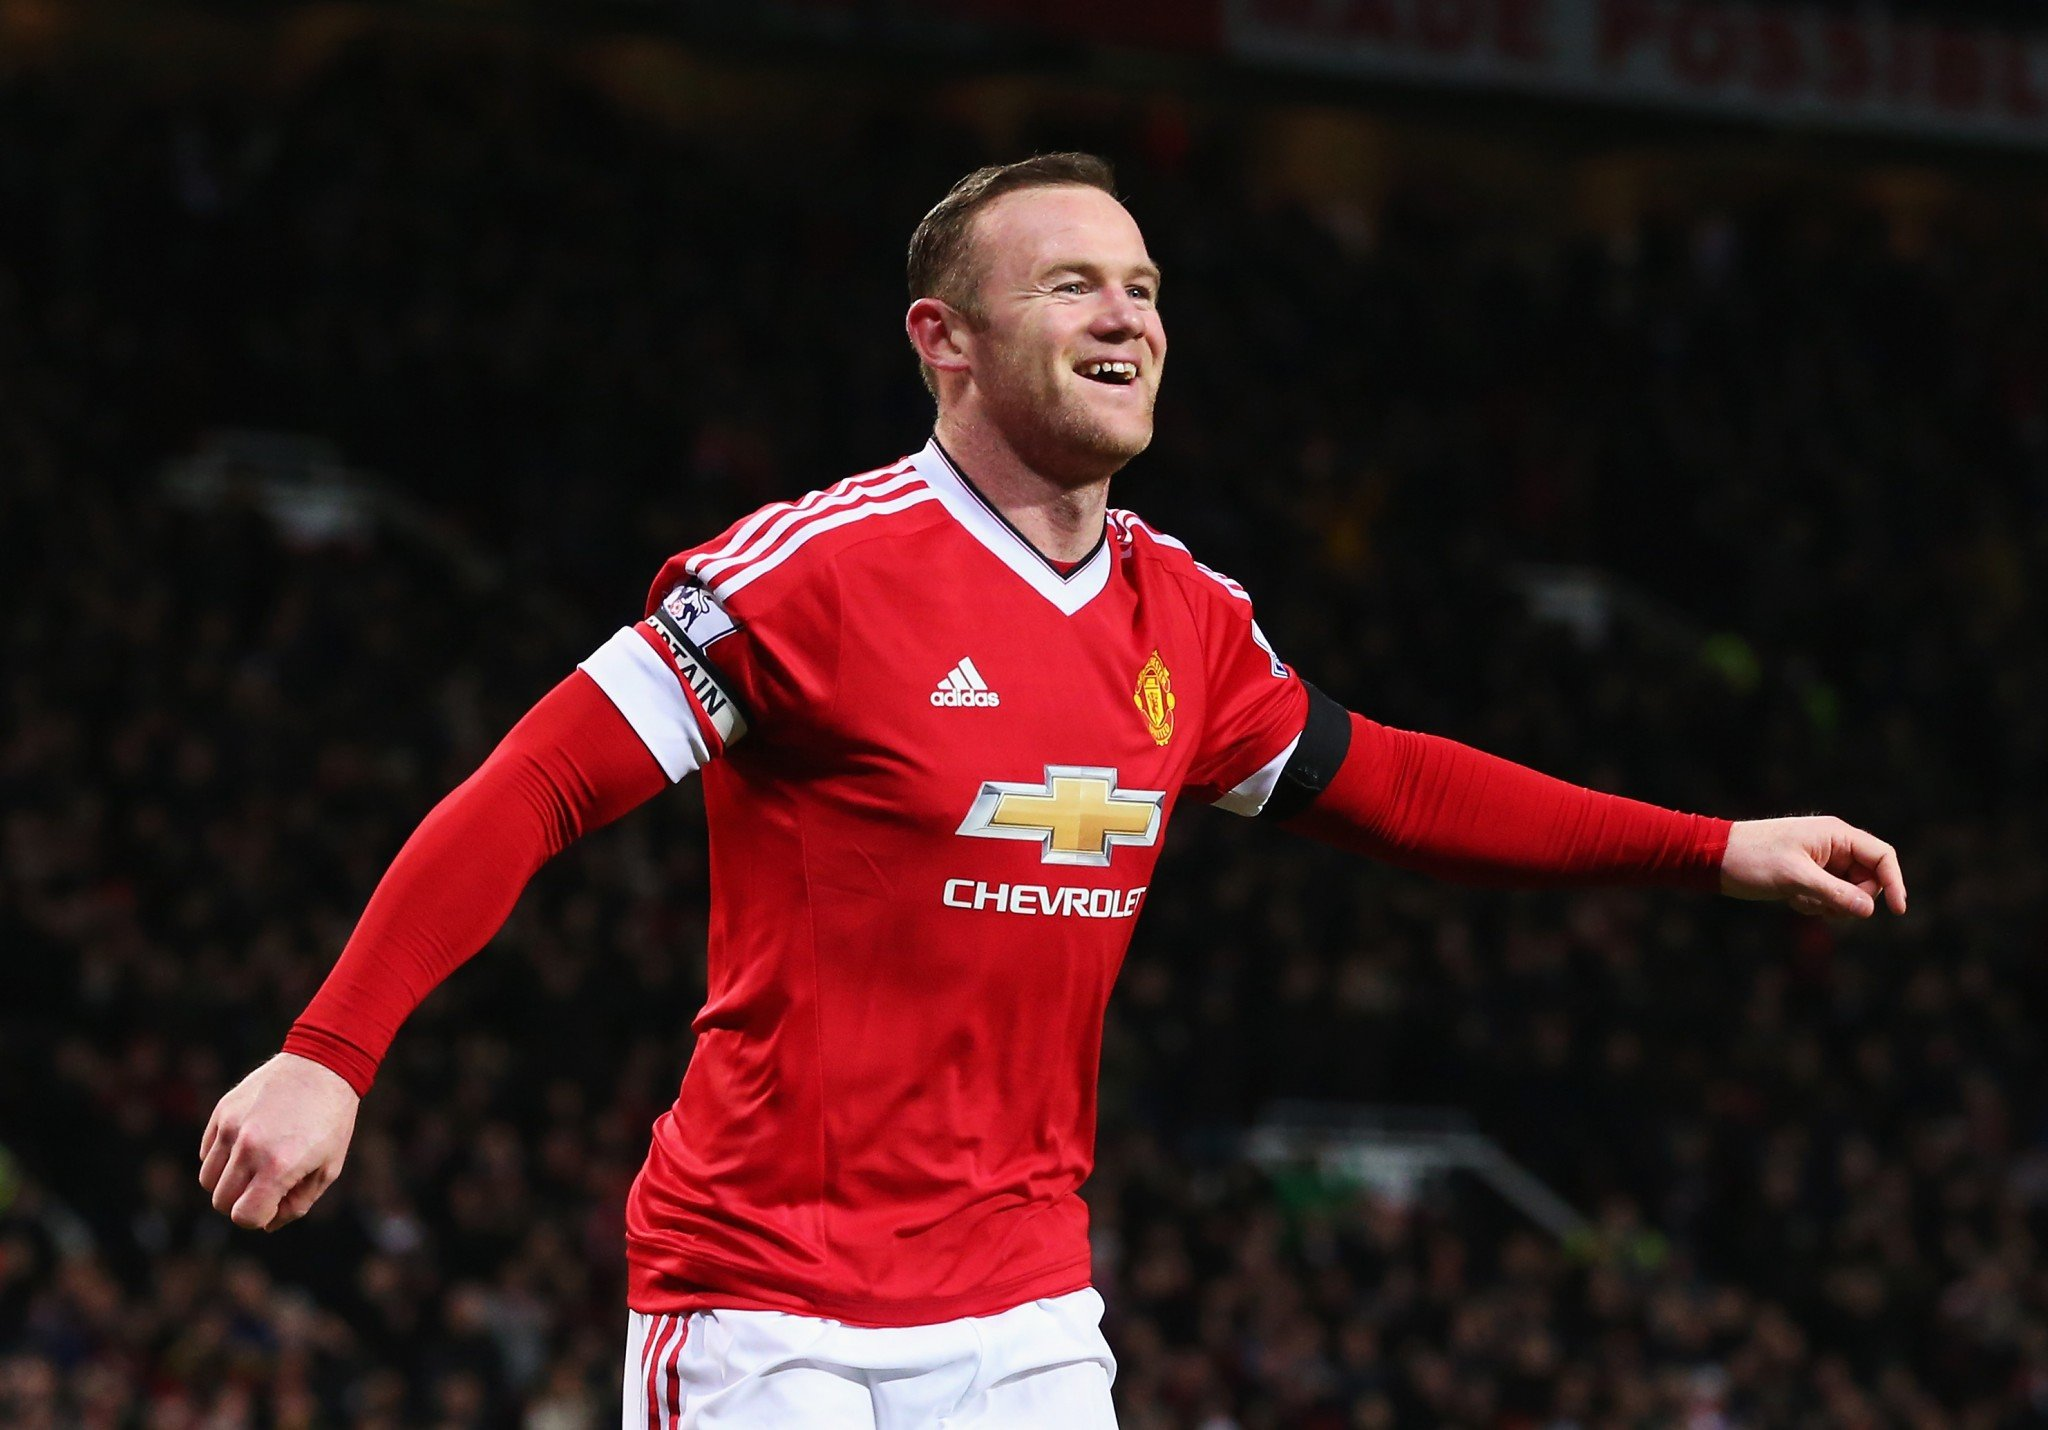 Wayne Rooney's Manchester United deal expires at the end of next season